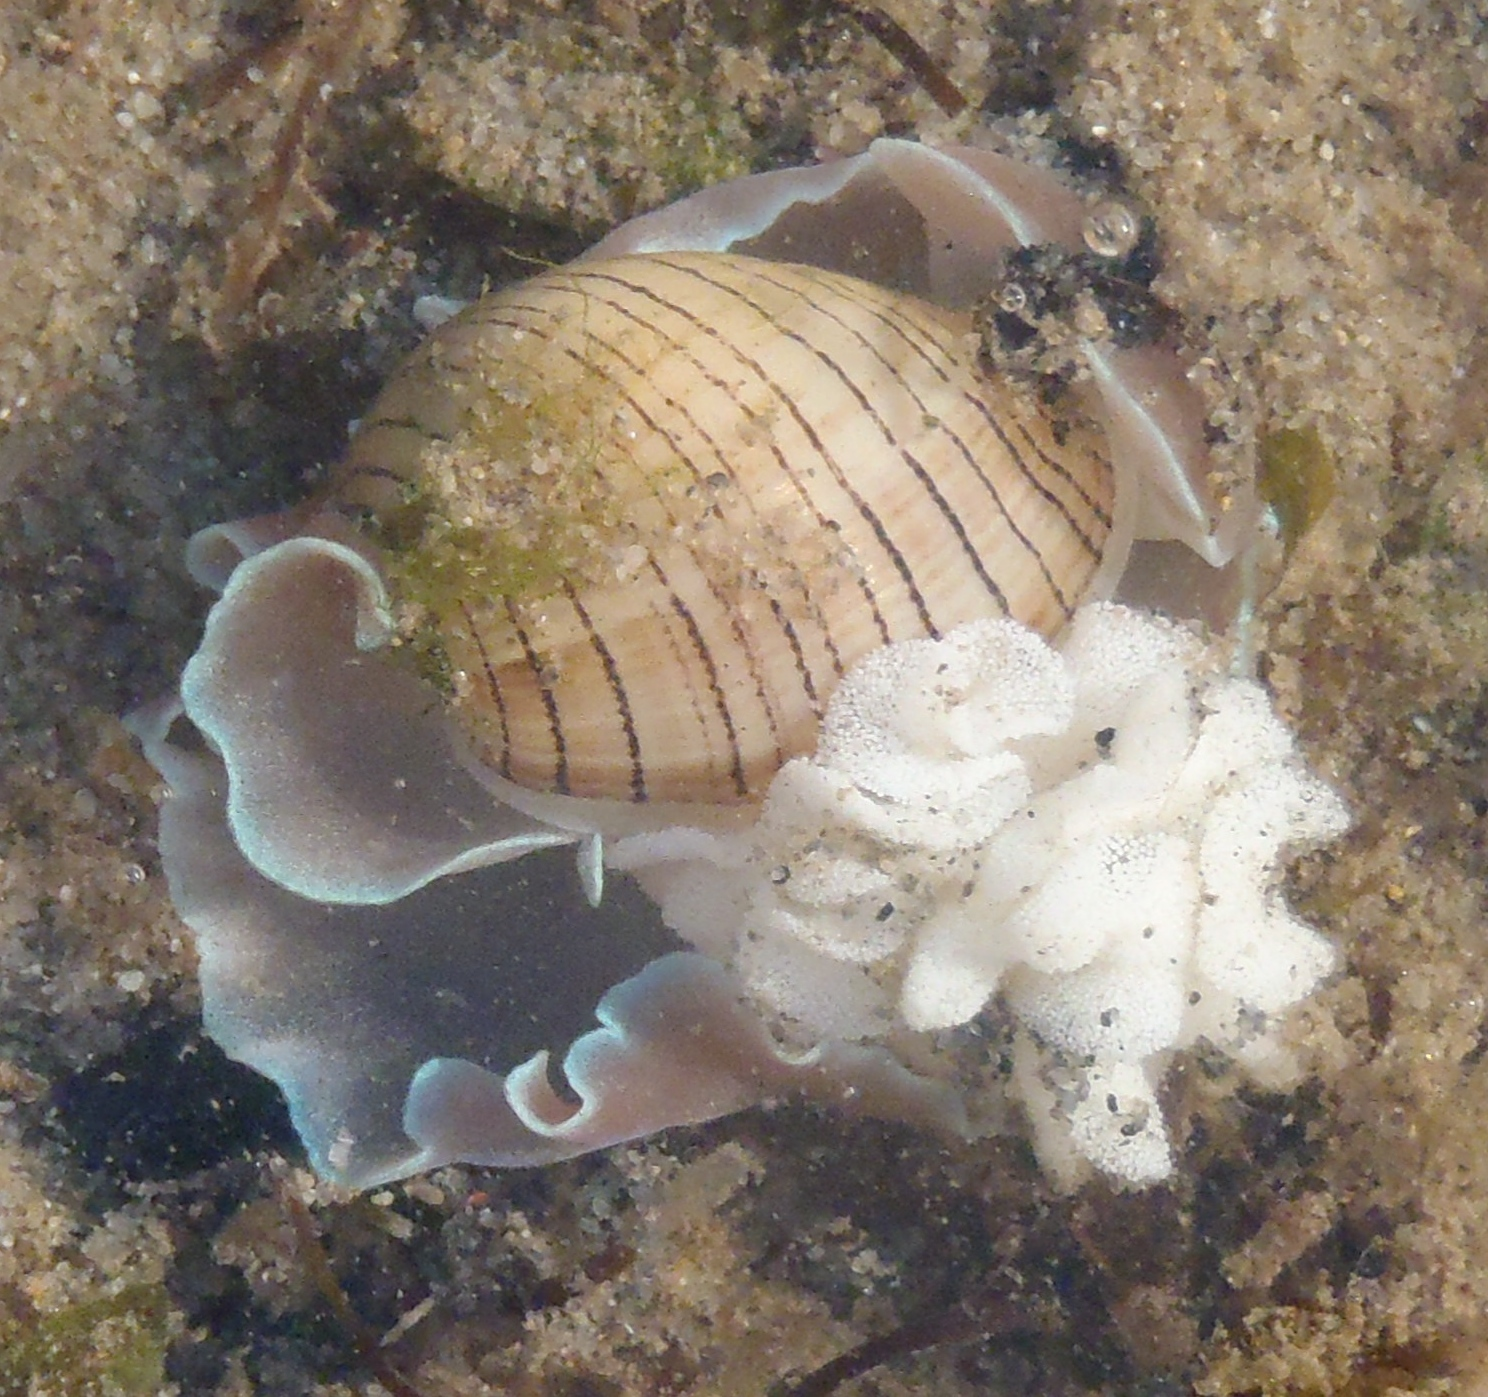 bubble shell (Hydatina) with egg mass